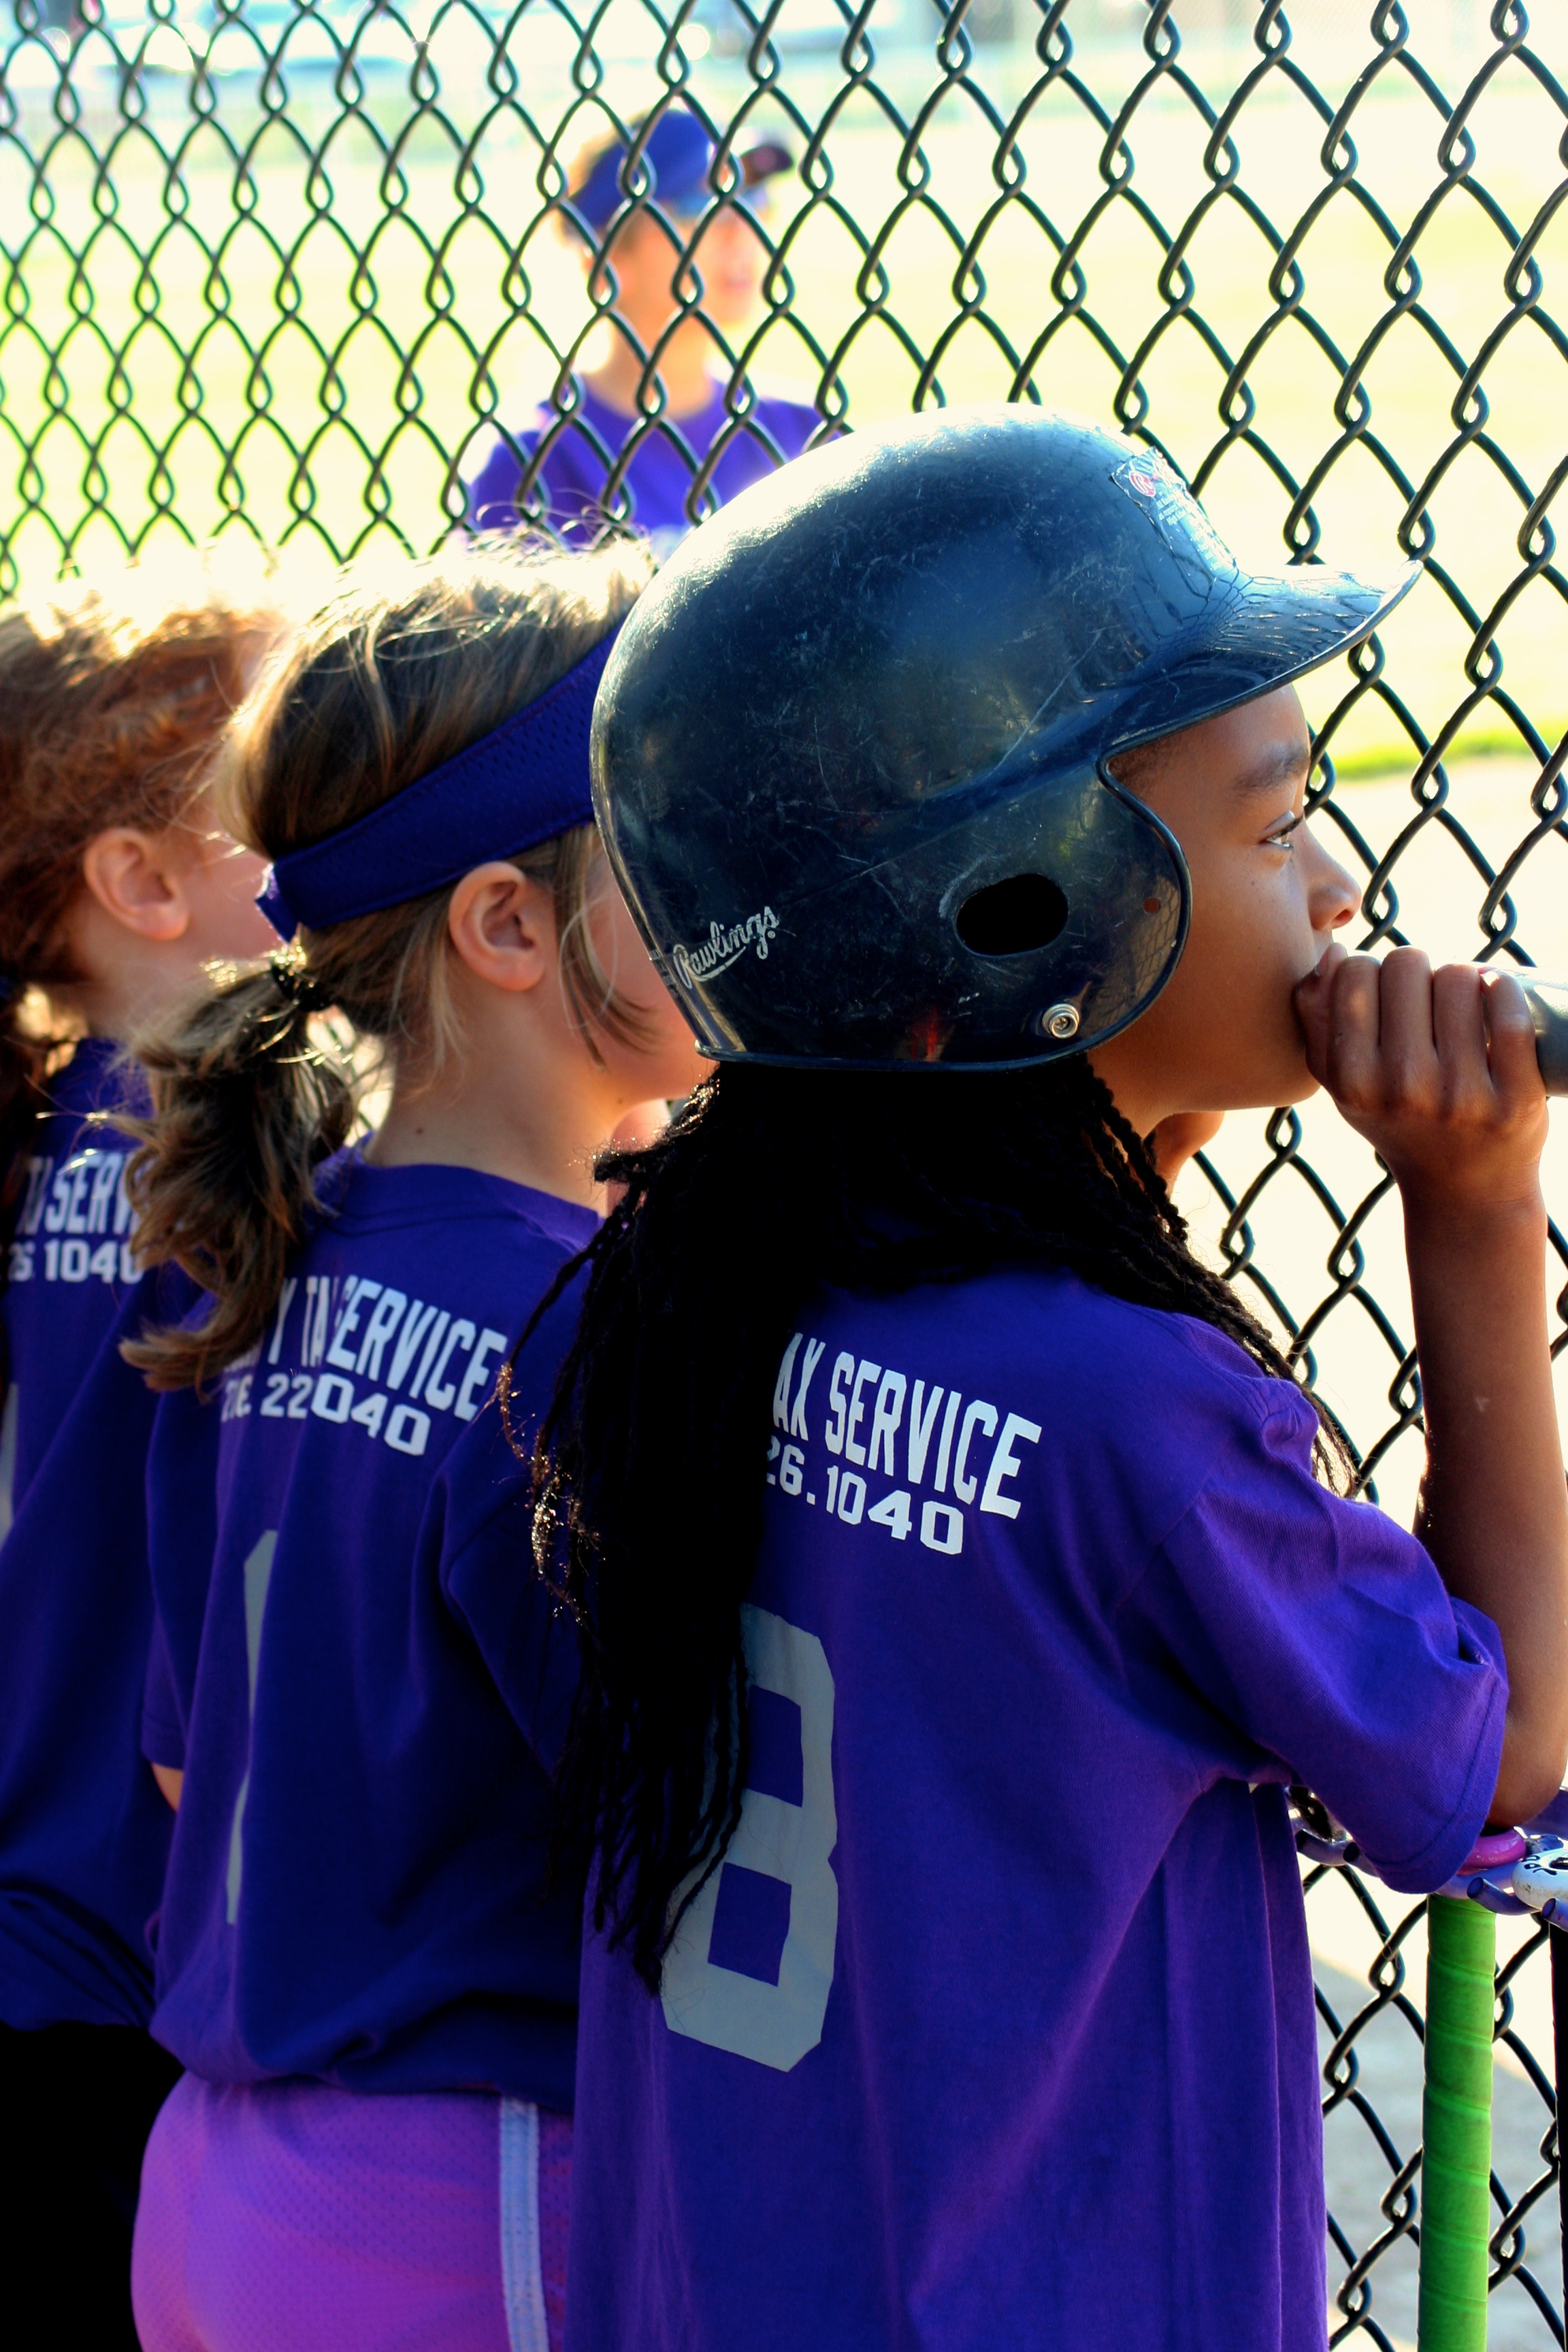 Score and assist with youth baseball and tball